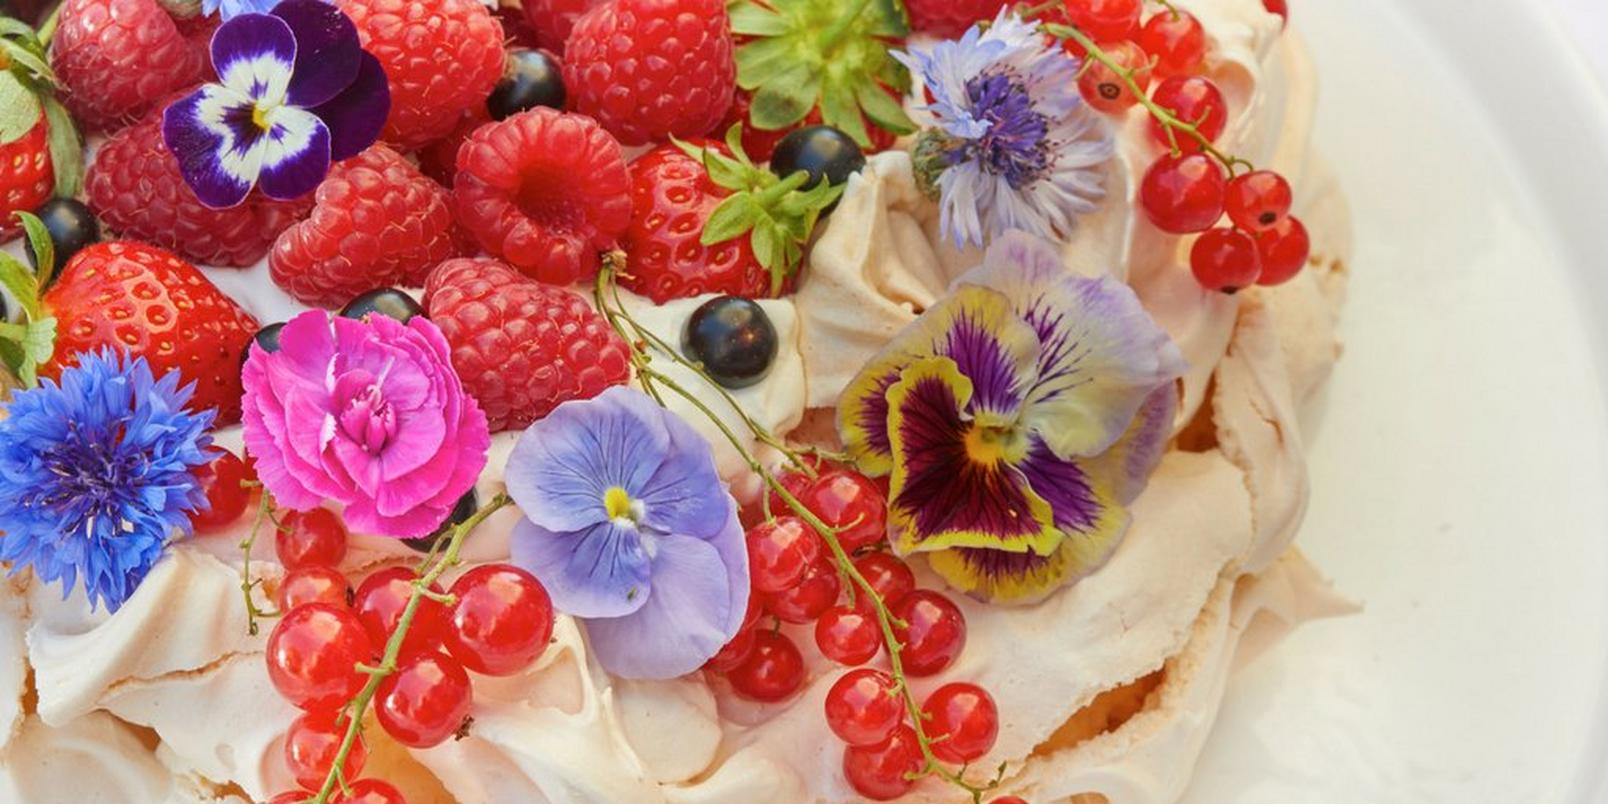 summer-dessert-with-berries-and-edible-flowers-1